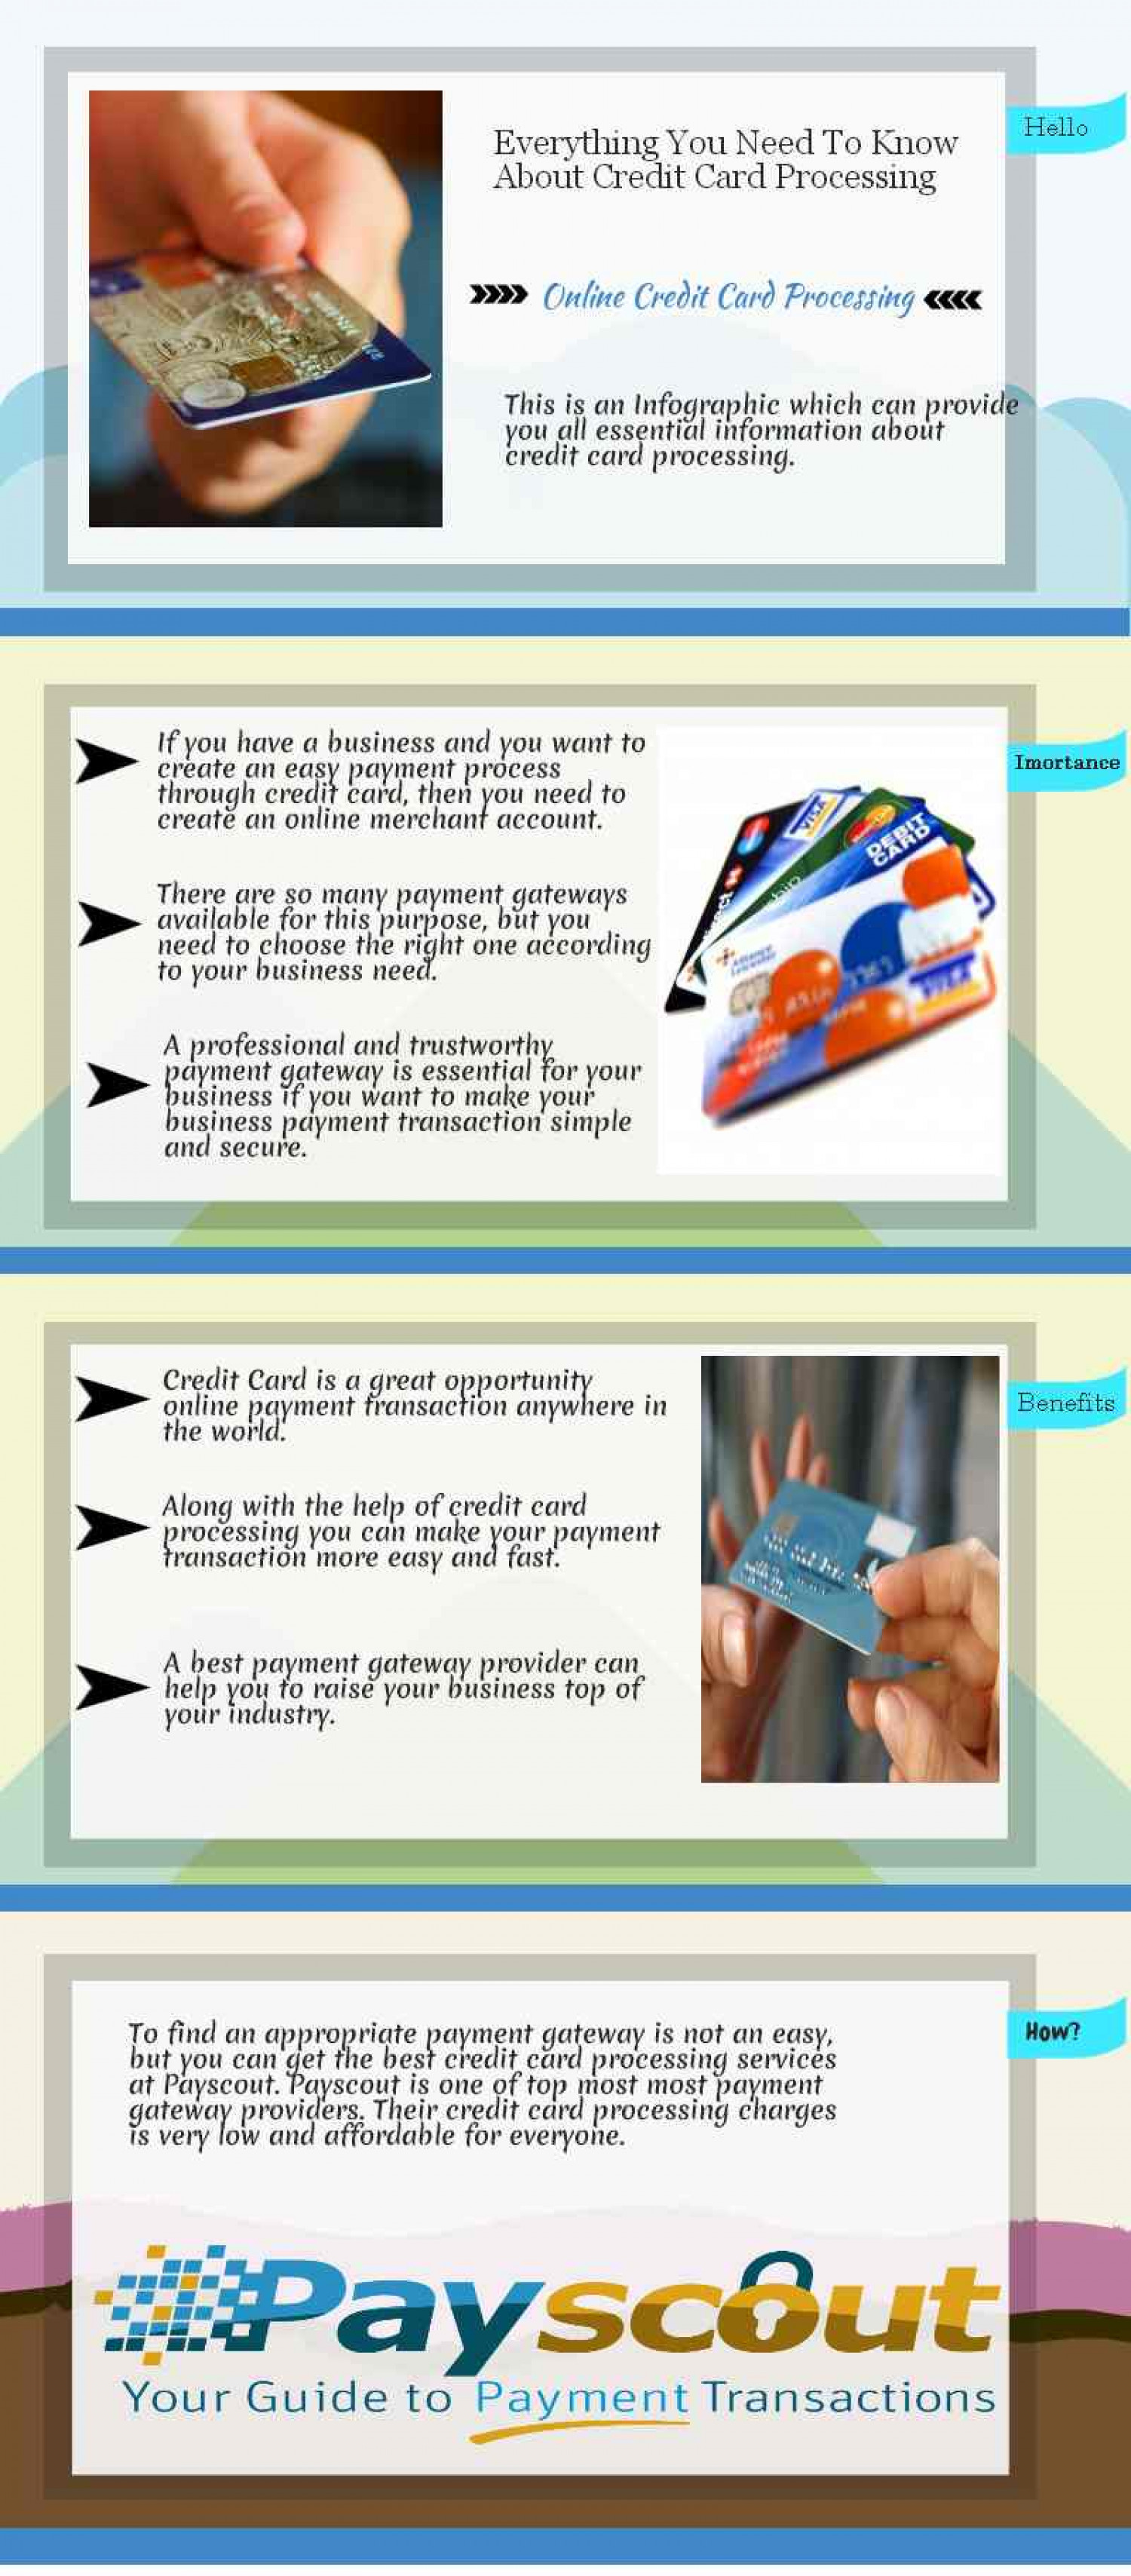 Everything You Need to Know About Credit Card Processing Infographic